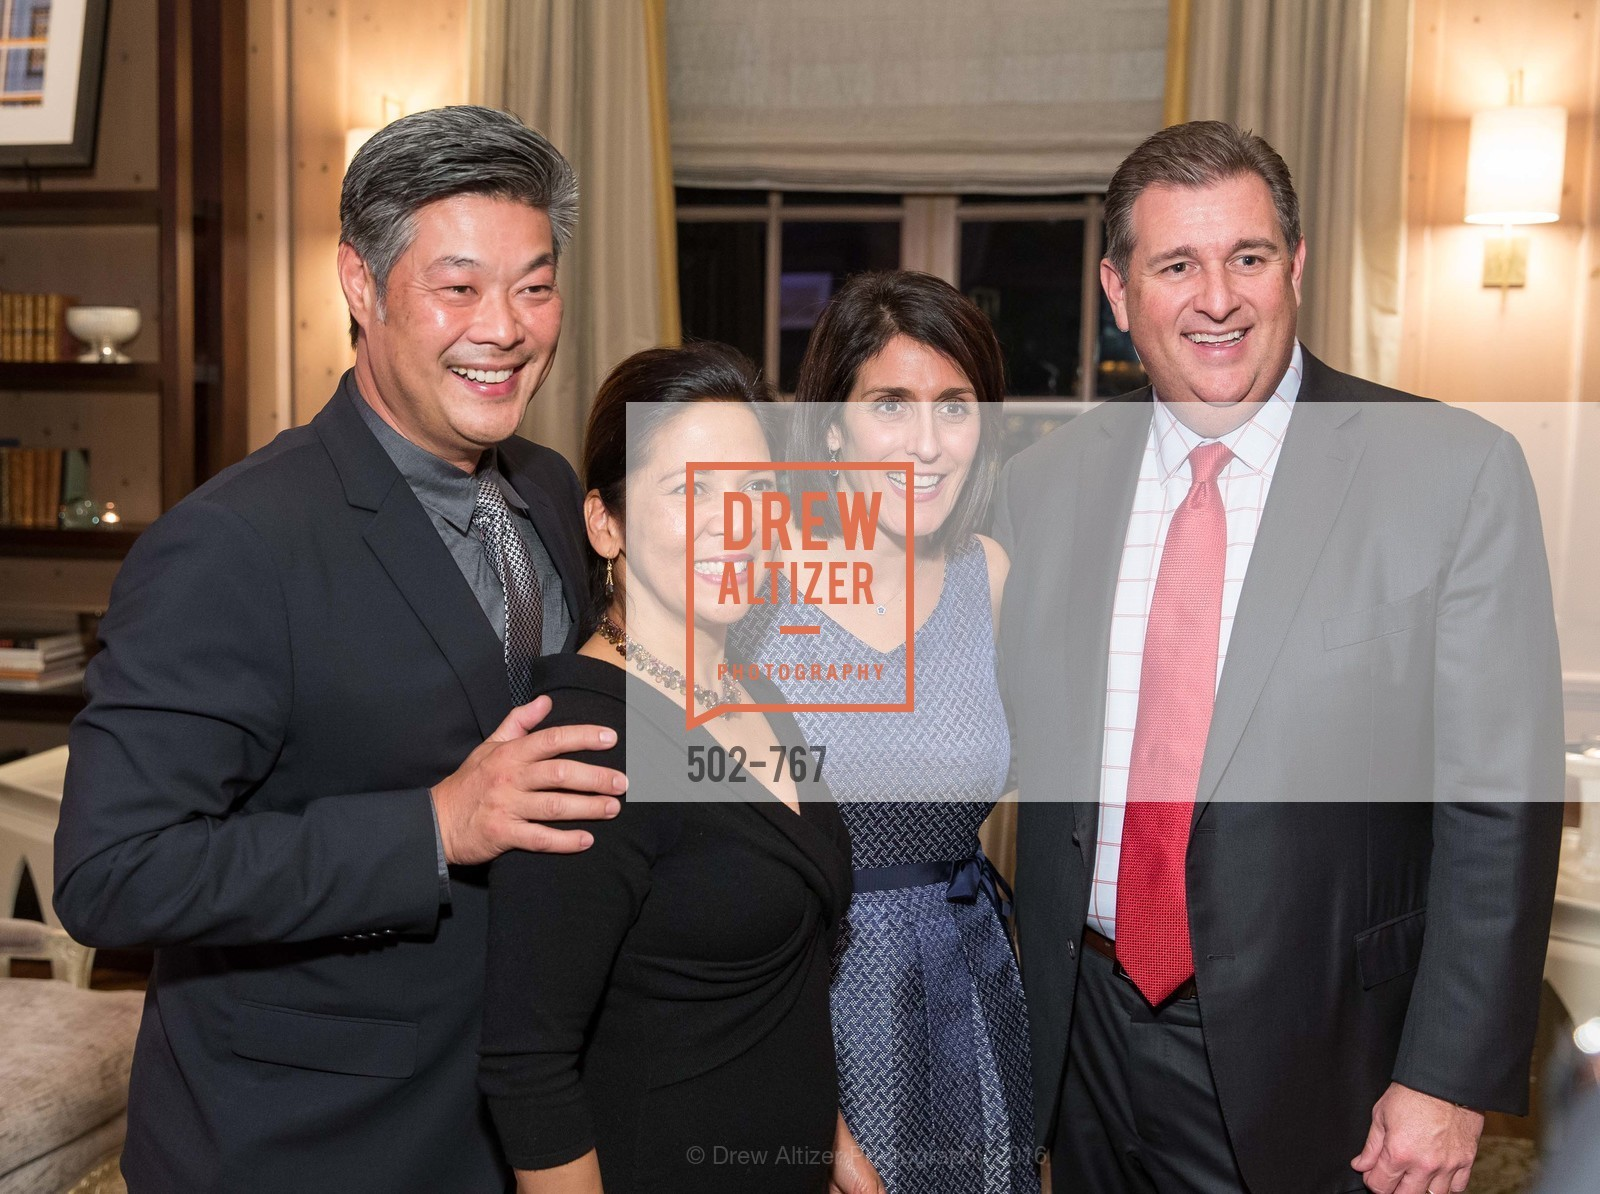 Rodney Fong, Darlene Fong, Elizabeth Revetria, Stephen Revetria, A Special Reception with Tony Bennett, The Fairmont, San Francisco, The Penthouse Suite, January 26th, 2016,Drew Altizer, Drew Altizer Photography, full-service agency, private events, San Francisco photographer, photographer california